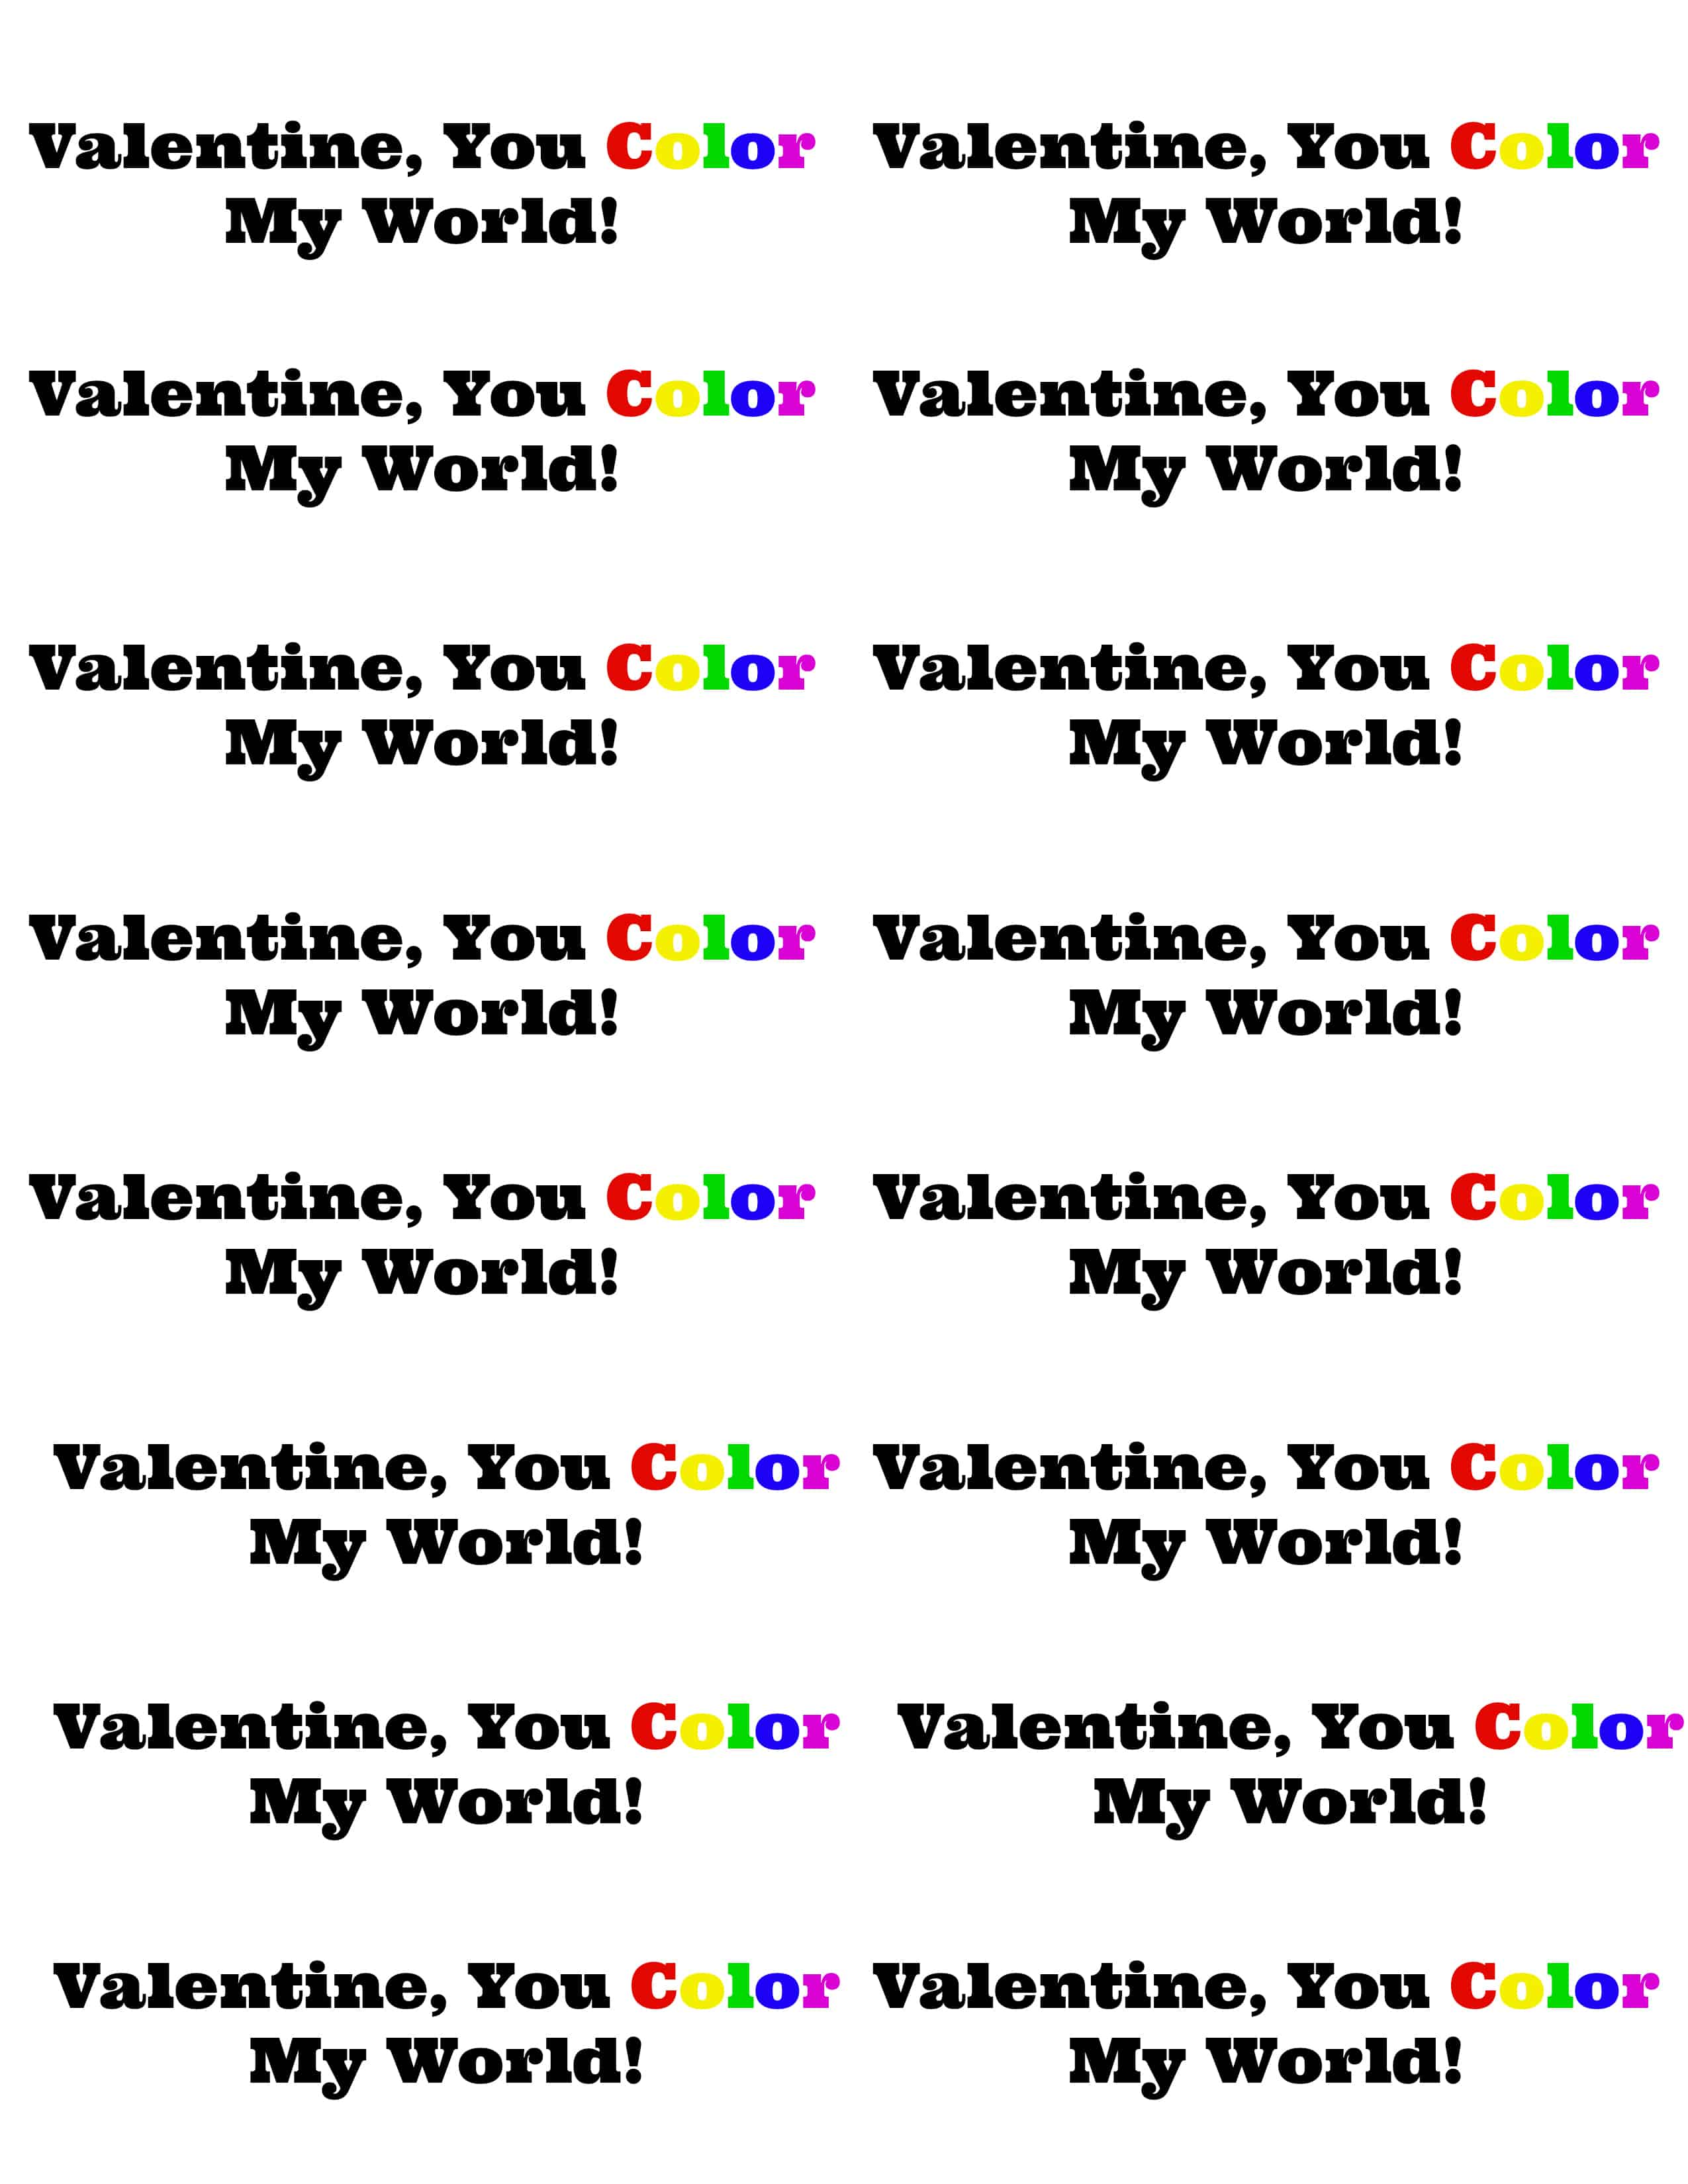 image about You Color My World Printable known as Tremendous Straightforward Non-Sweet Greenback Shop Valentines with Printables